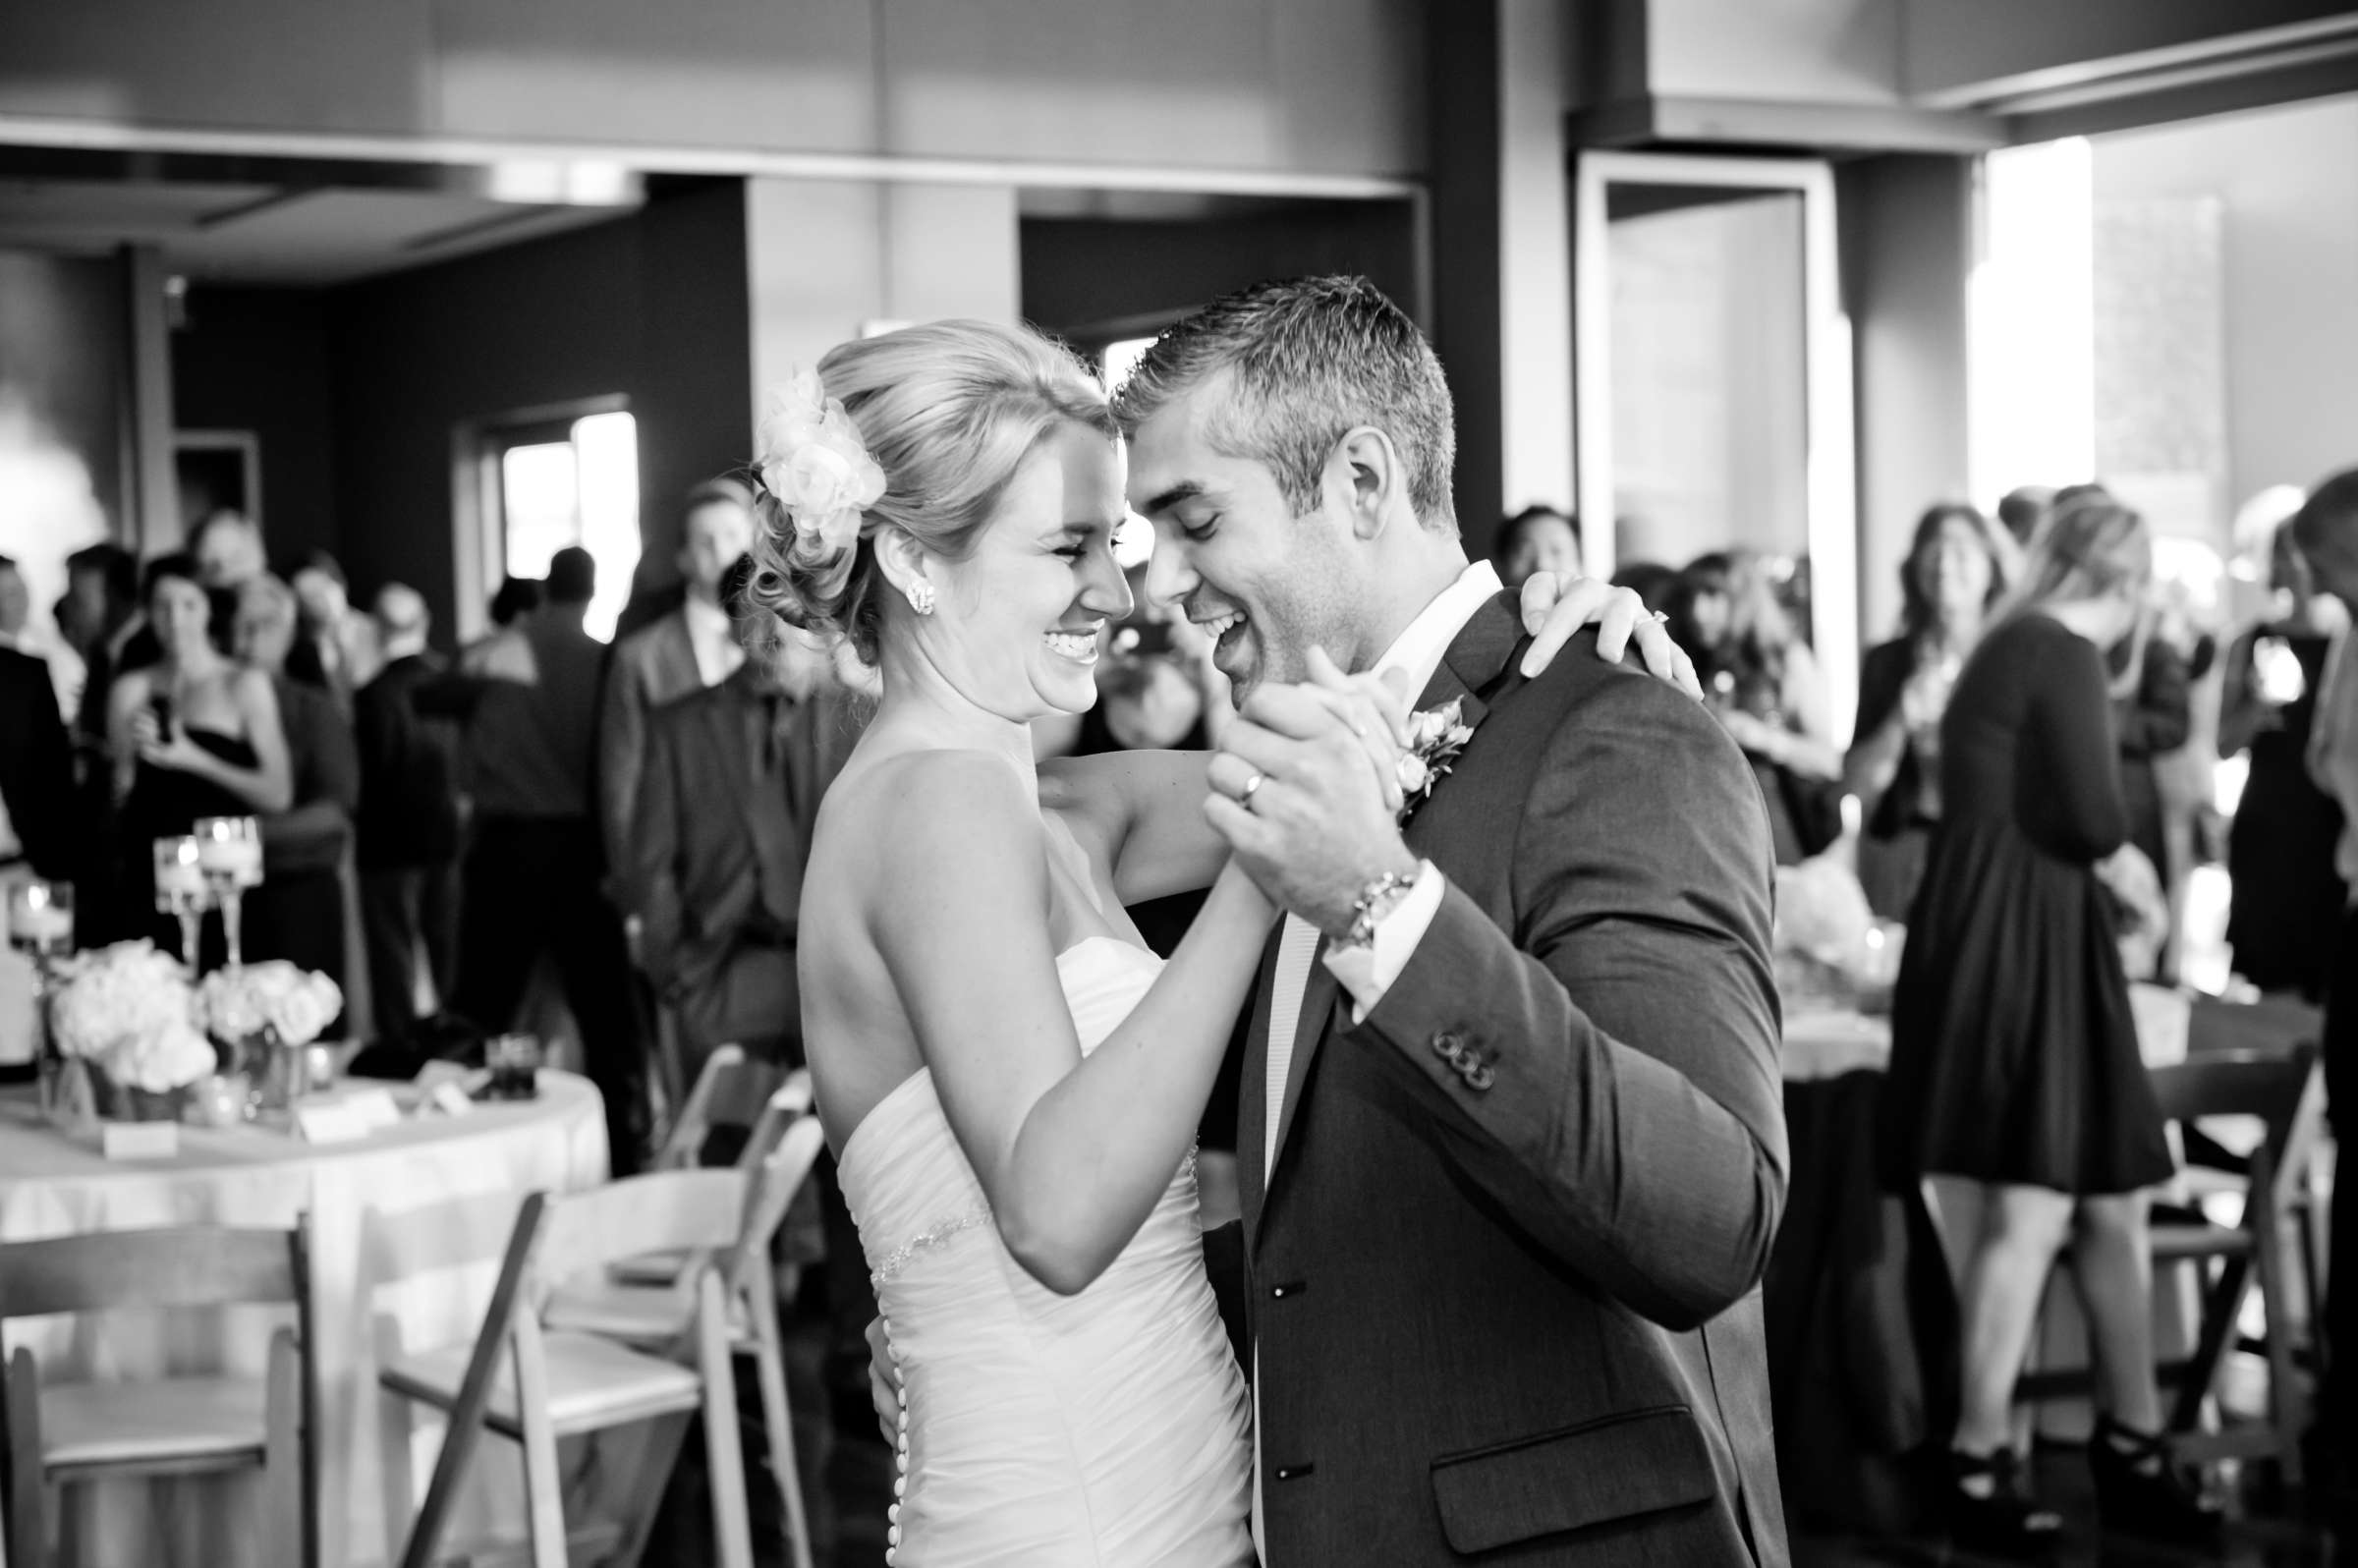 Ultimate Skybox Wedding, Chelsea and Frank Wedding Photo #51 by True Photography